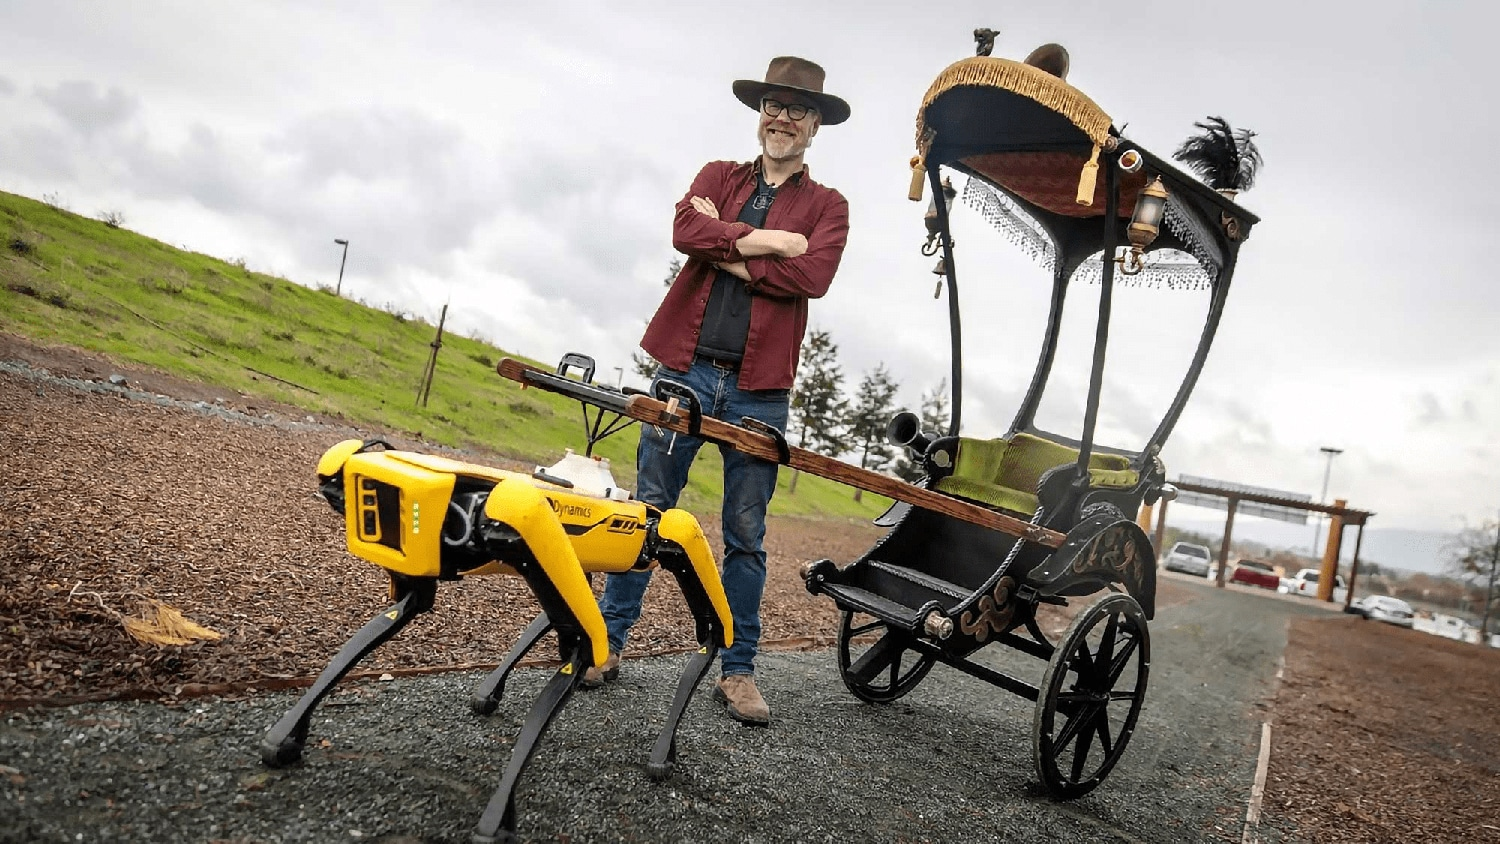 Adam Savage has a new horse for his rickshaw